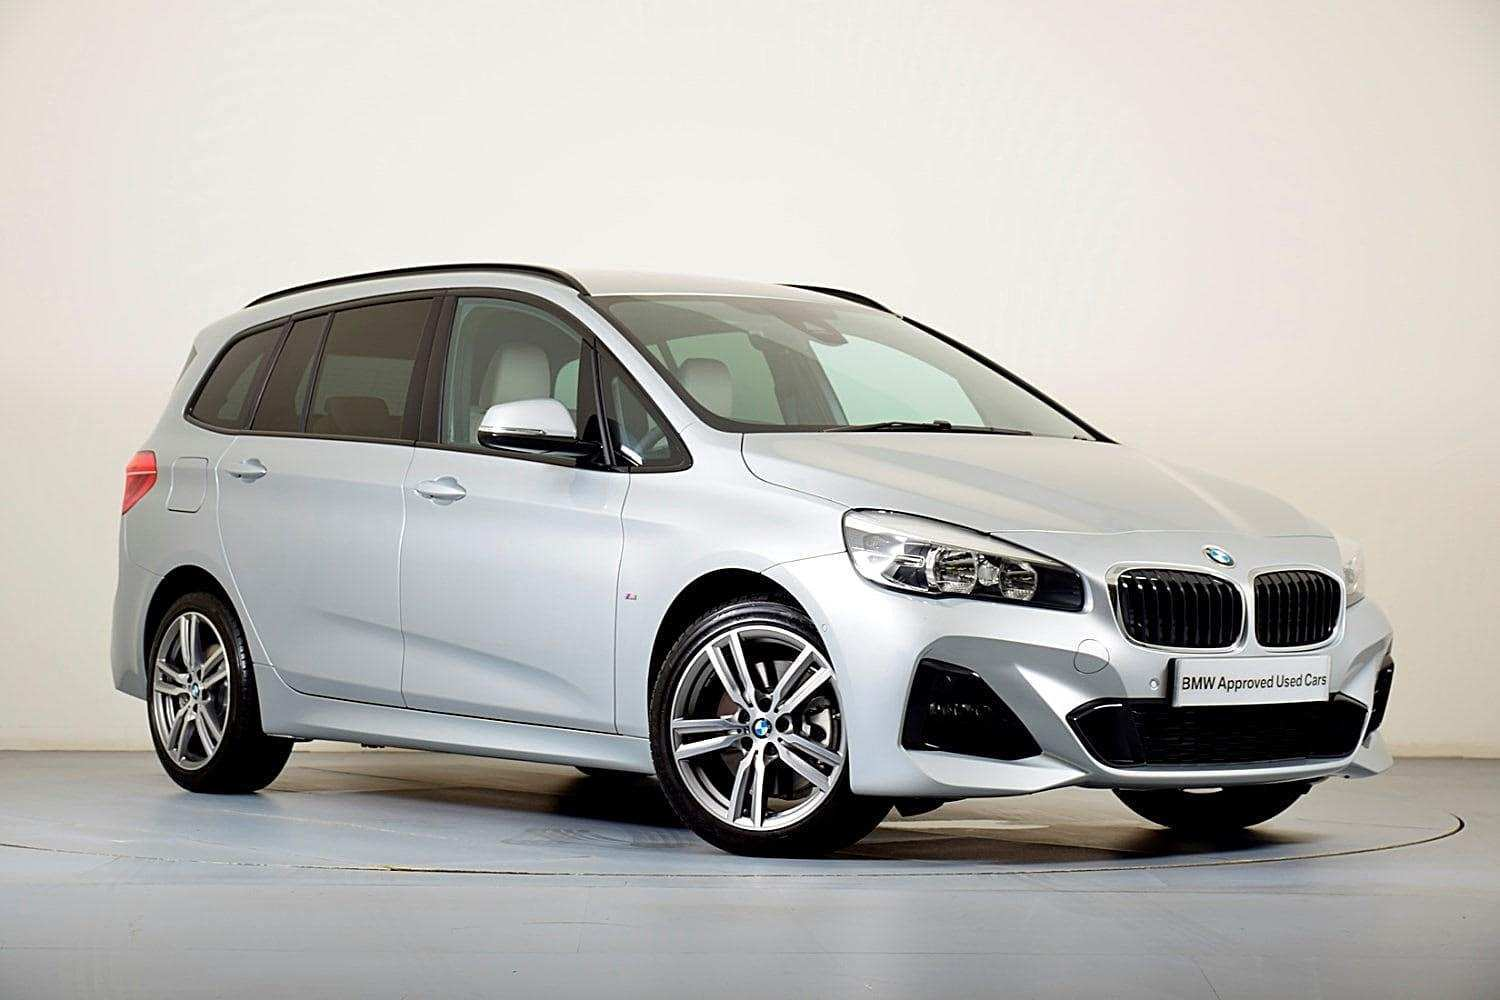 48 The Best 2020 BMW 220D Xdrive Style